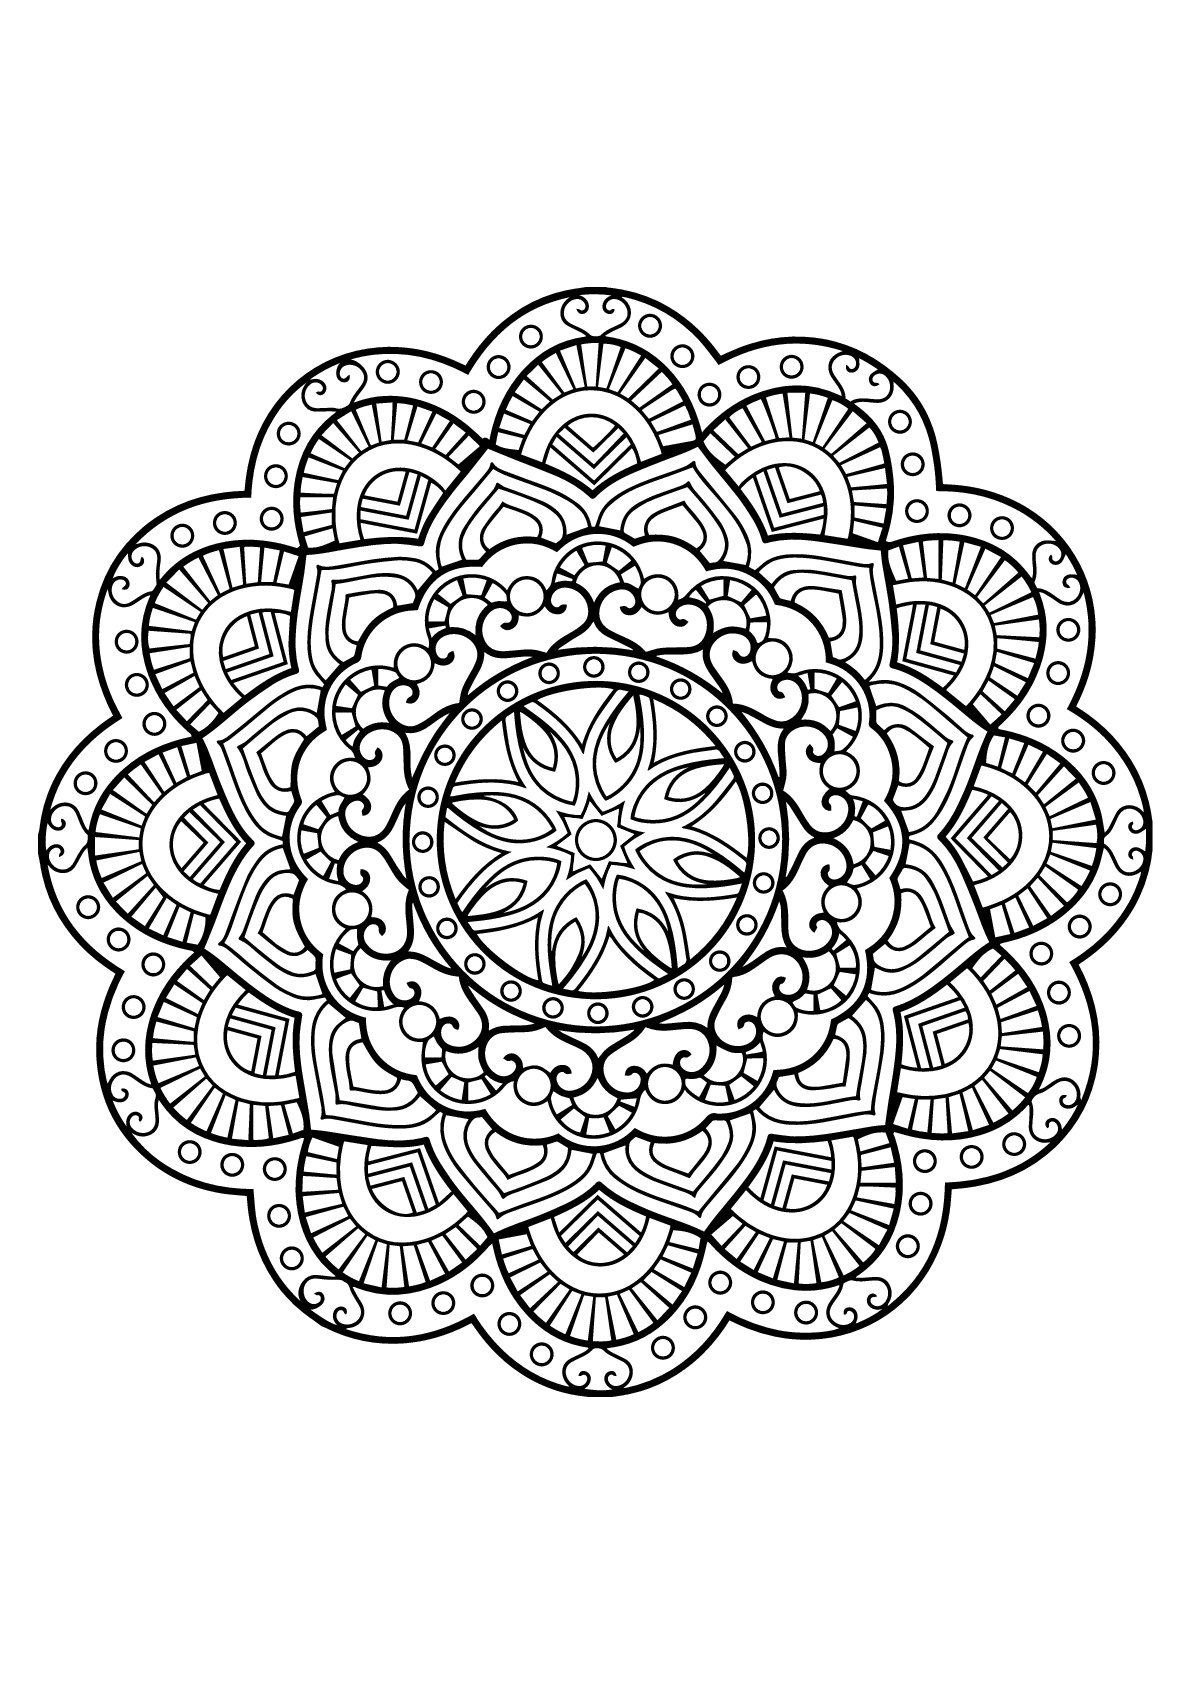 free printable mandalas for adults free printable mandala coloring pages for adults free adults printable for mandalas